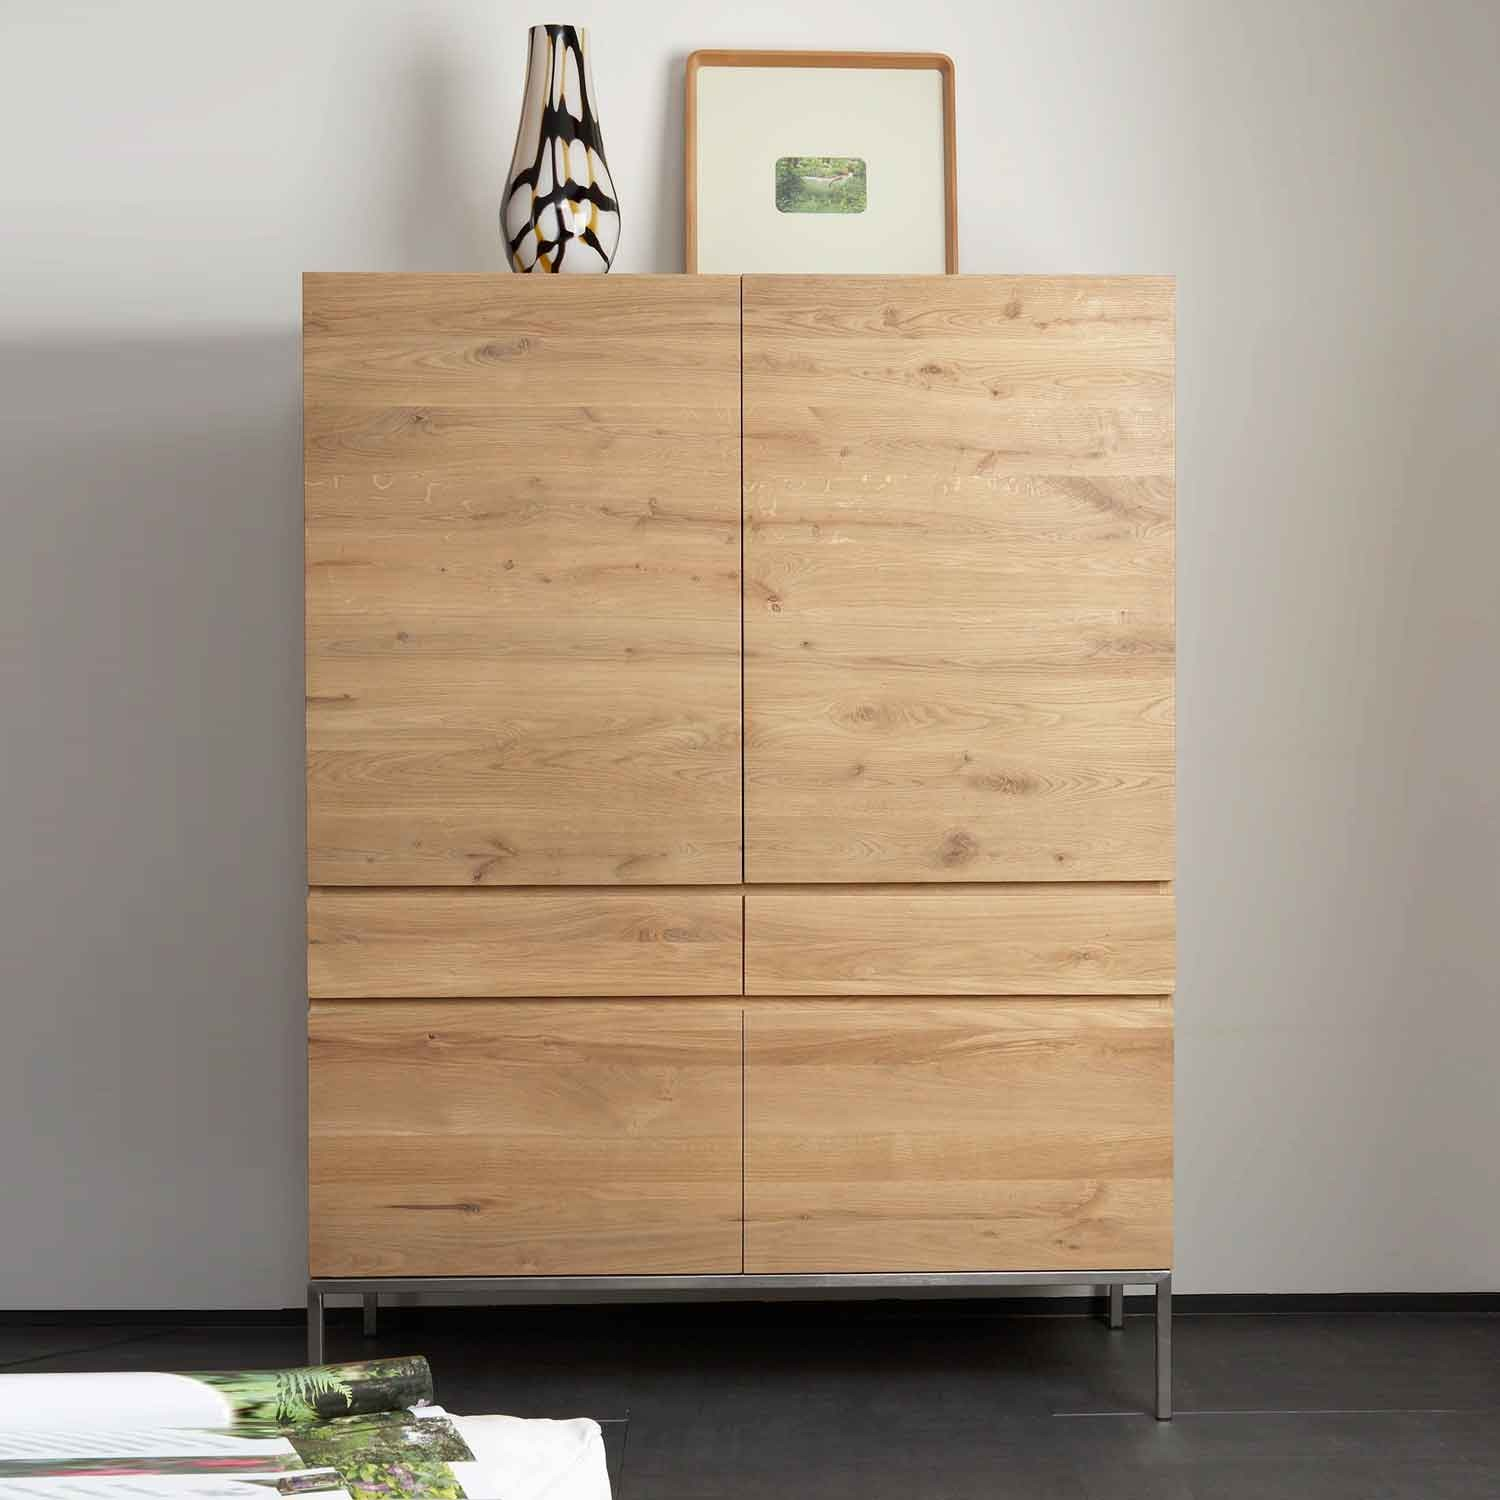 Ethnicraft Ligna Oak Storage Cupboard 4 Opening Doors 2 Drawers